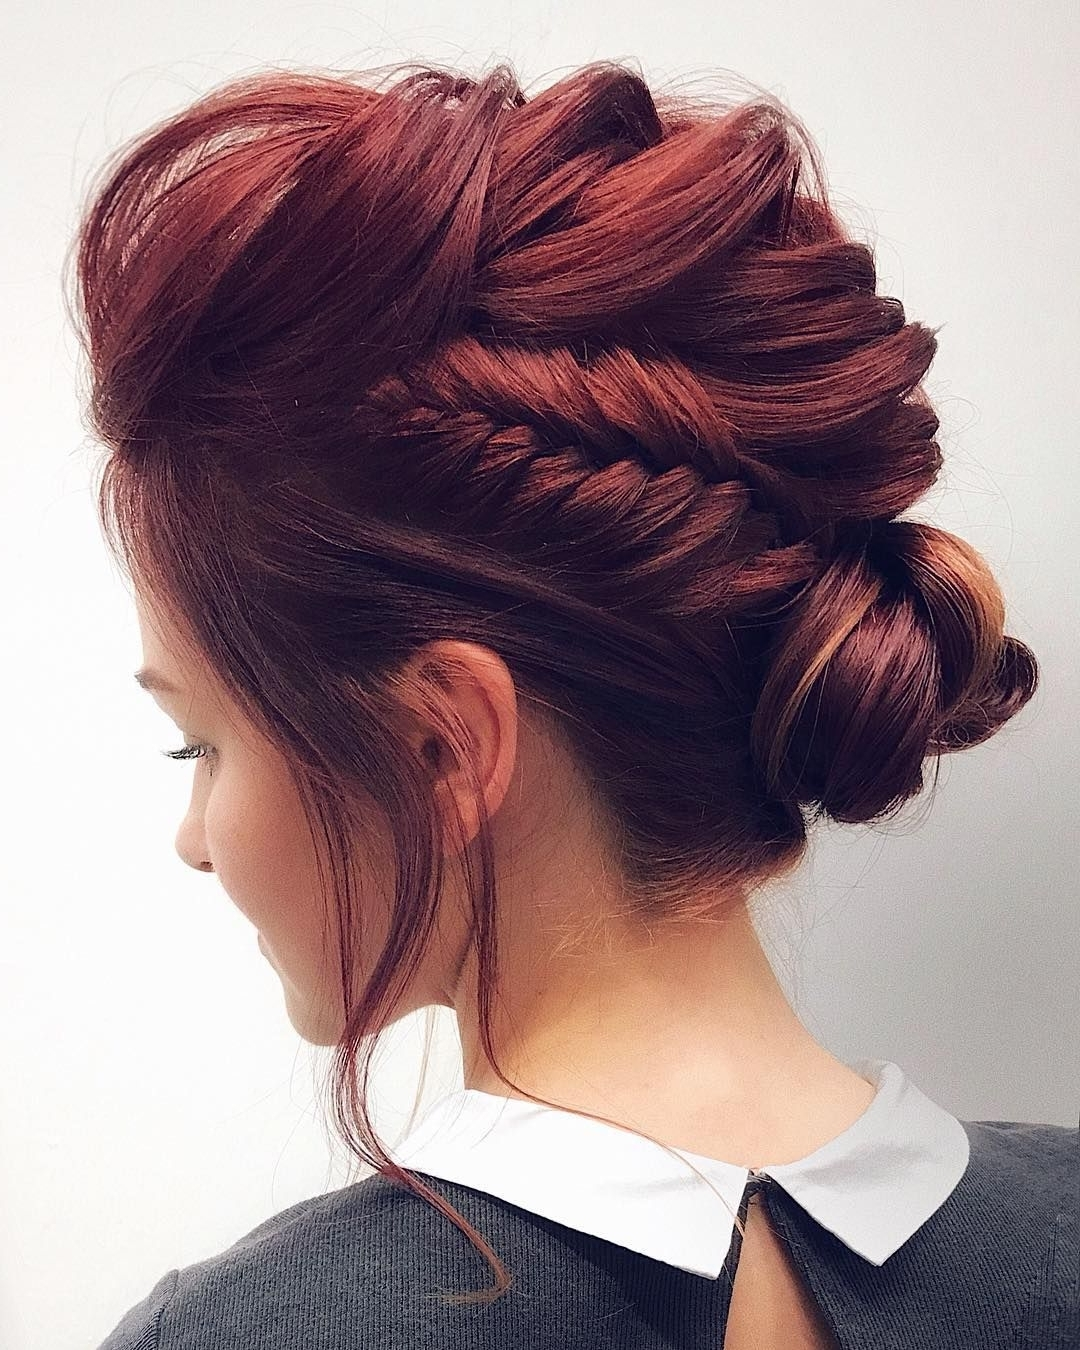 Famous Unique Braided Up Do Hairstyles Within Gorgeous Feminine Braided Updo Wedding Hairstyles (View 14 of 15)